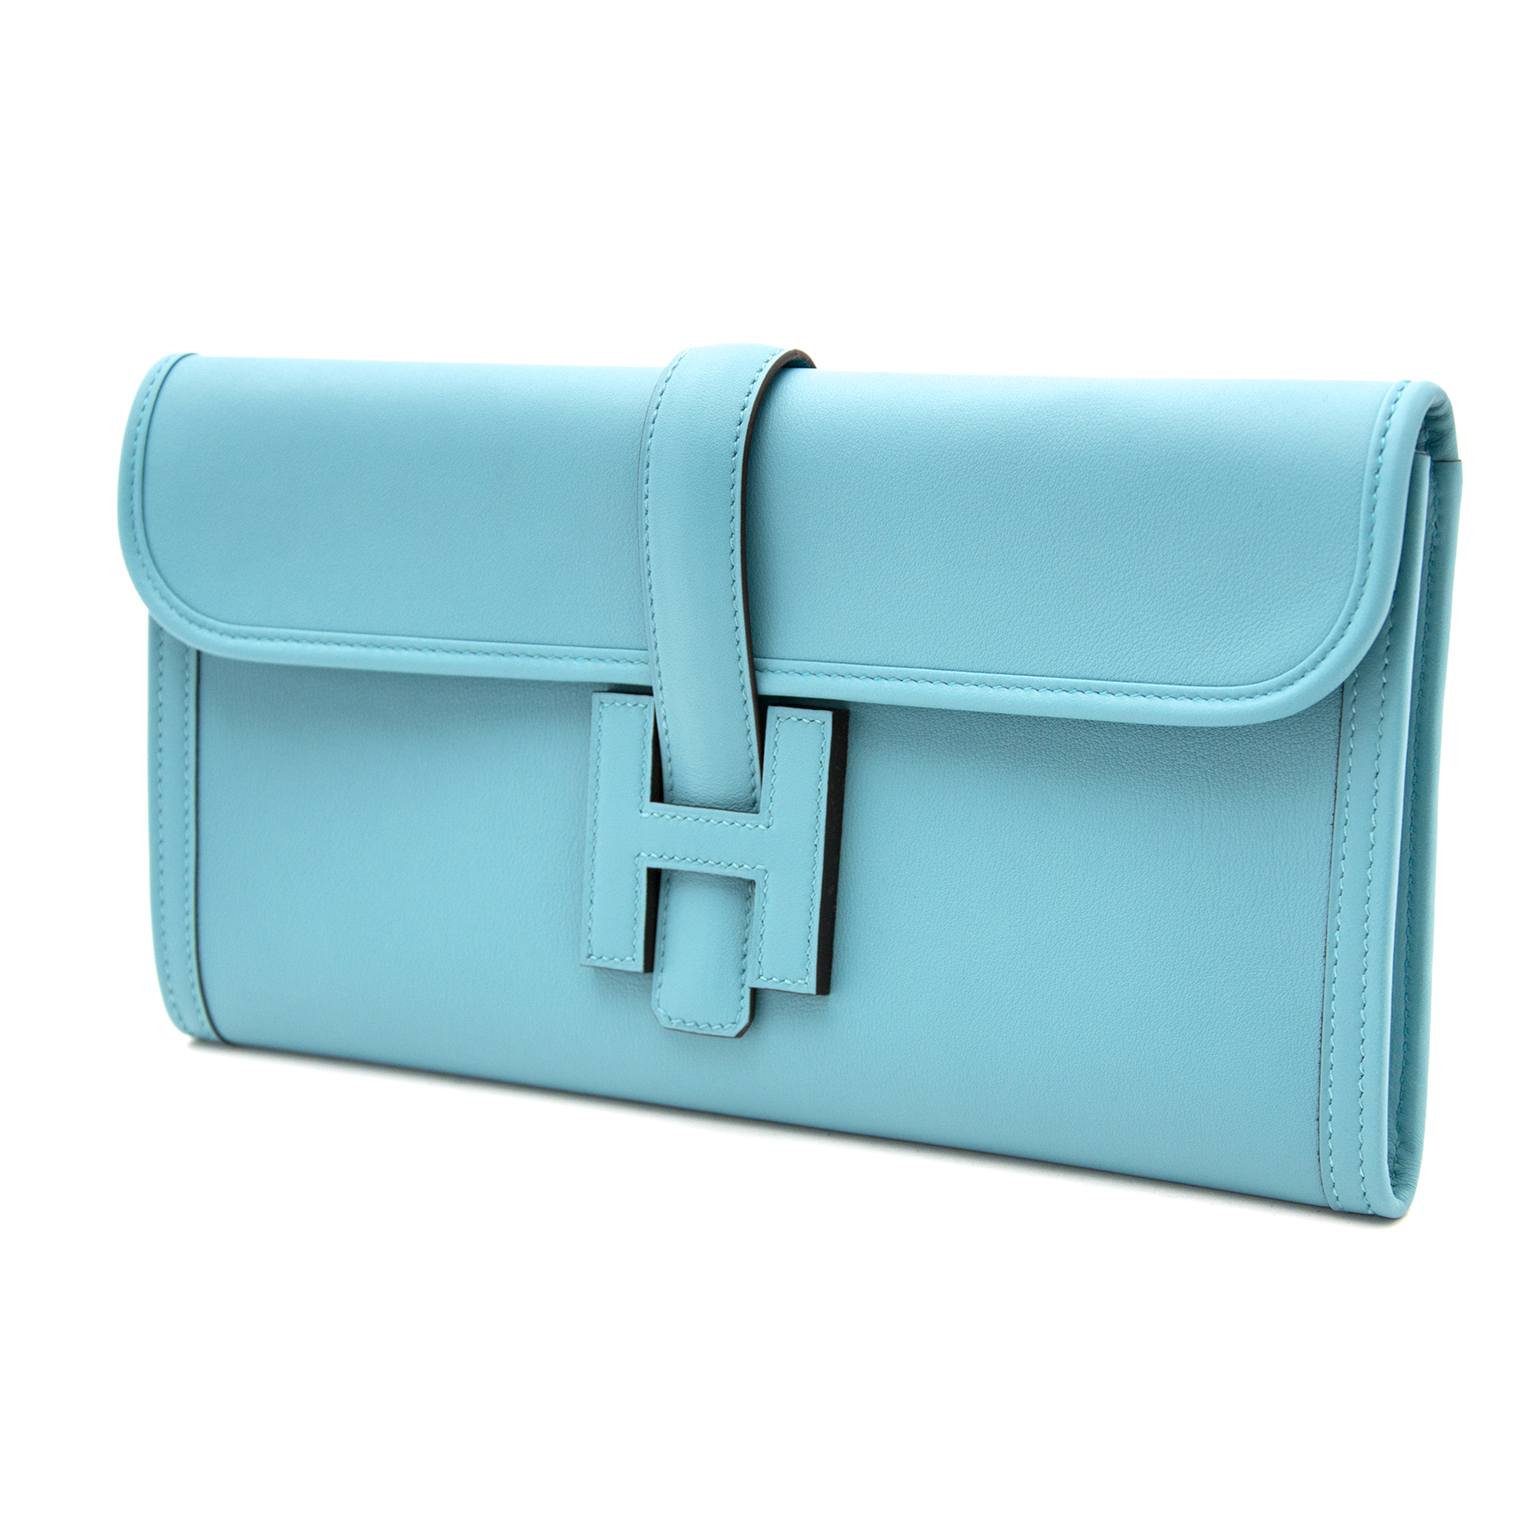 Hermes Jige Elan Saint-Cyr Blue clutch now online at labellov.com. Buy and sell your designer handbags for the best price